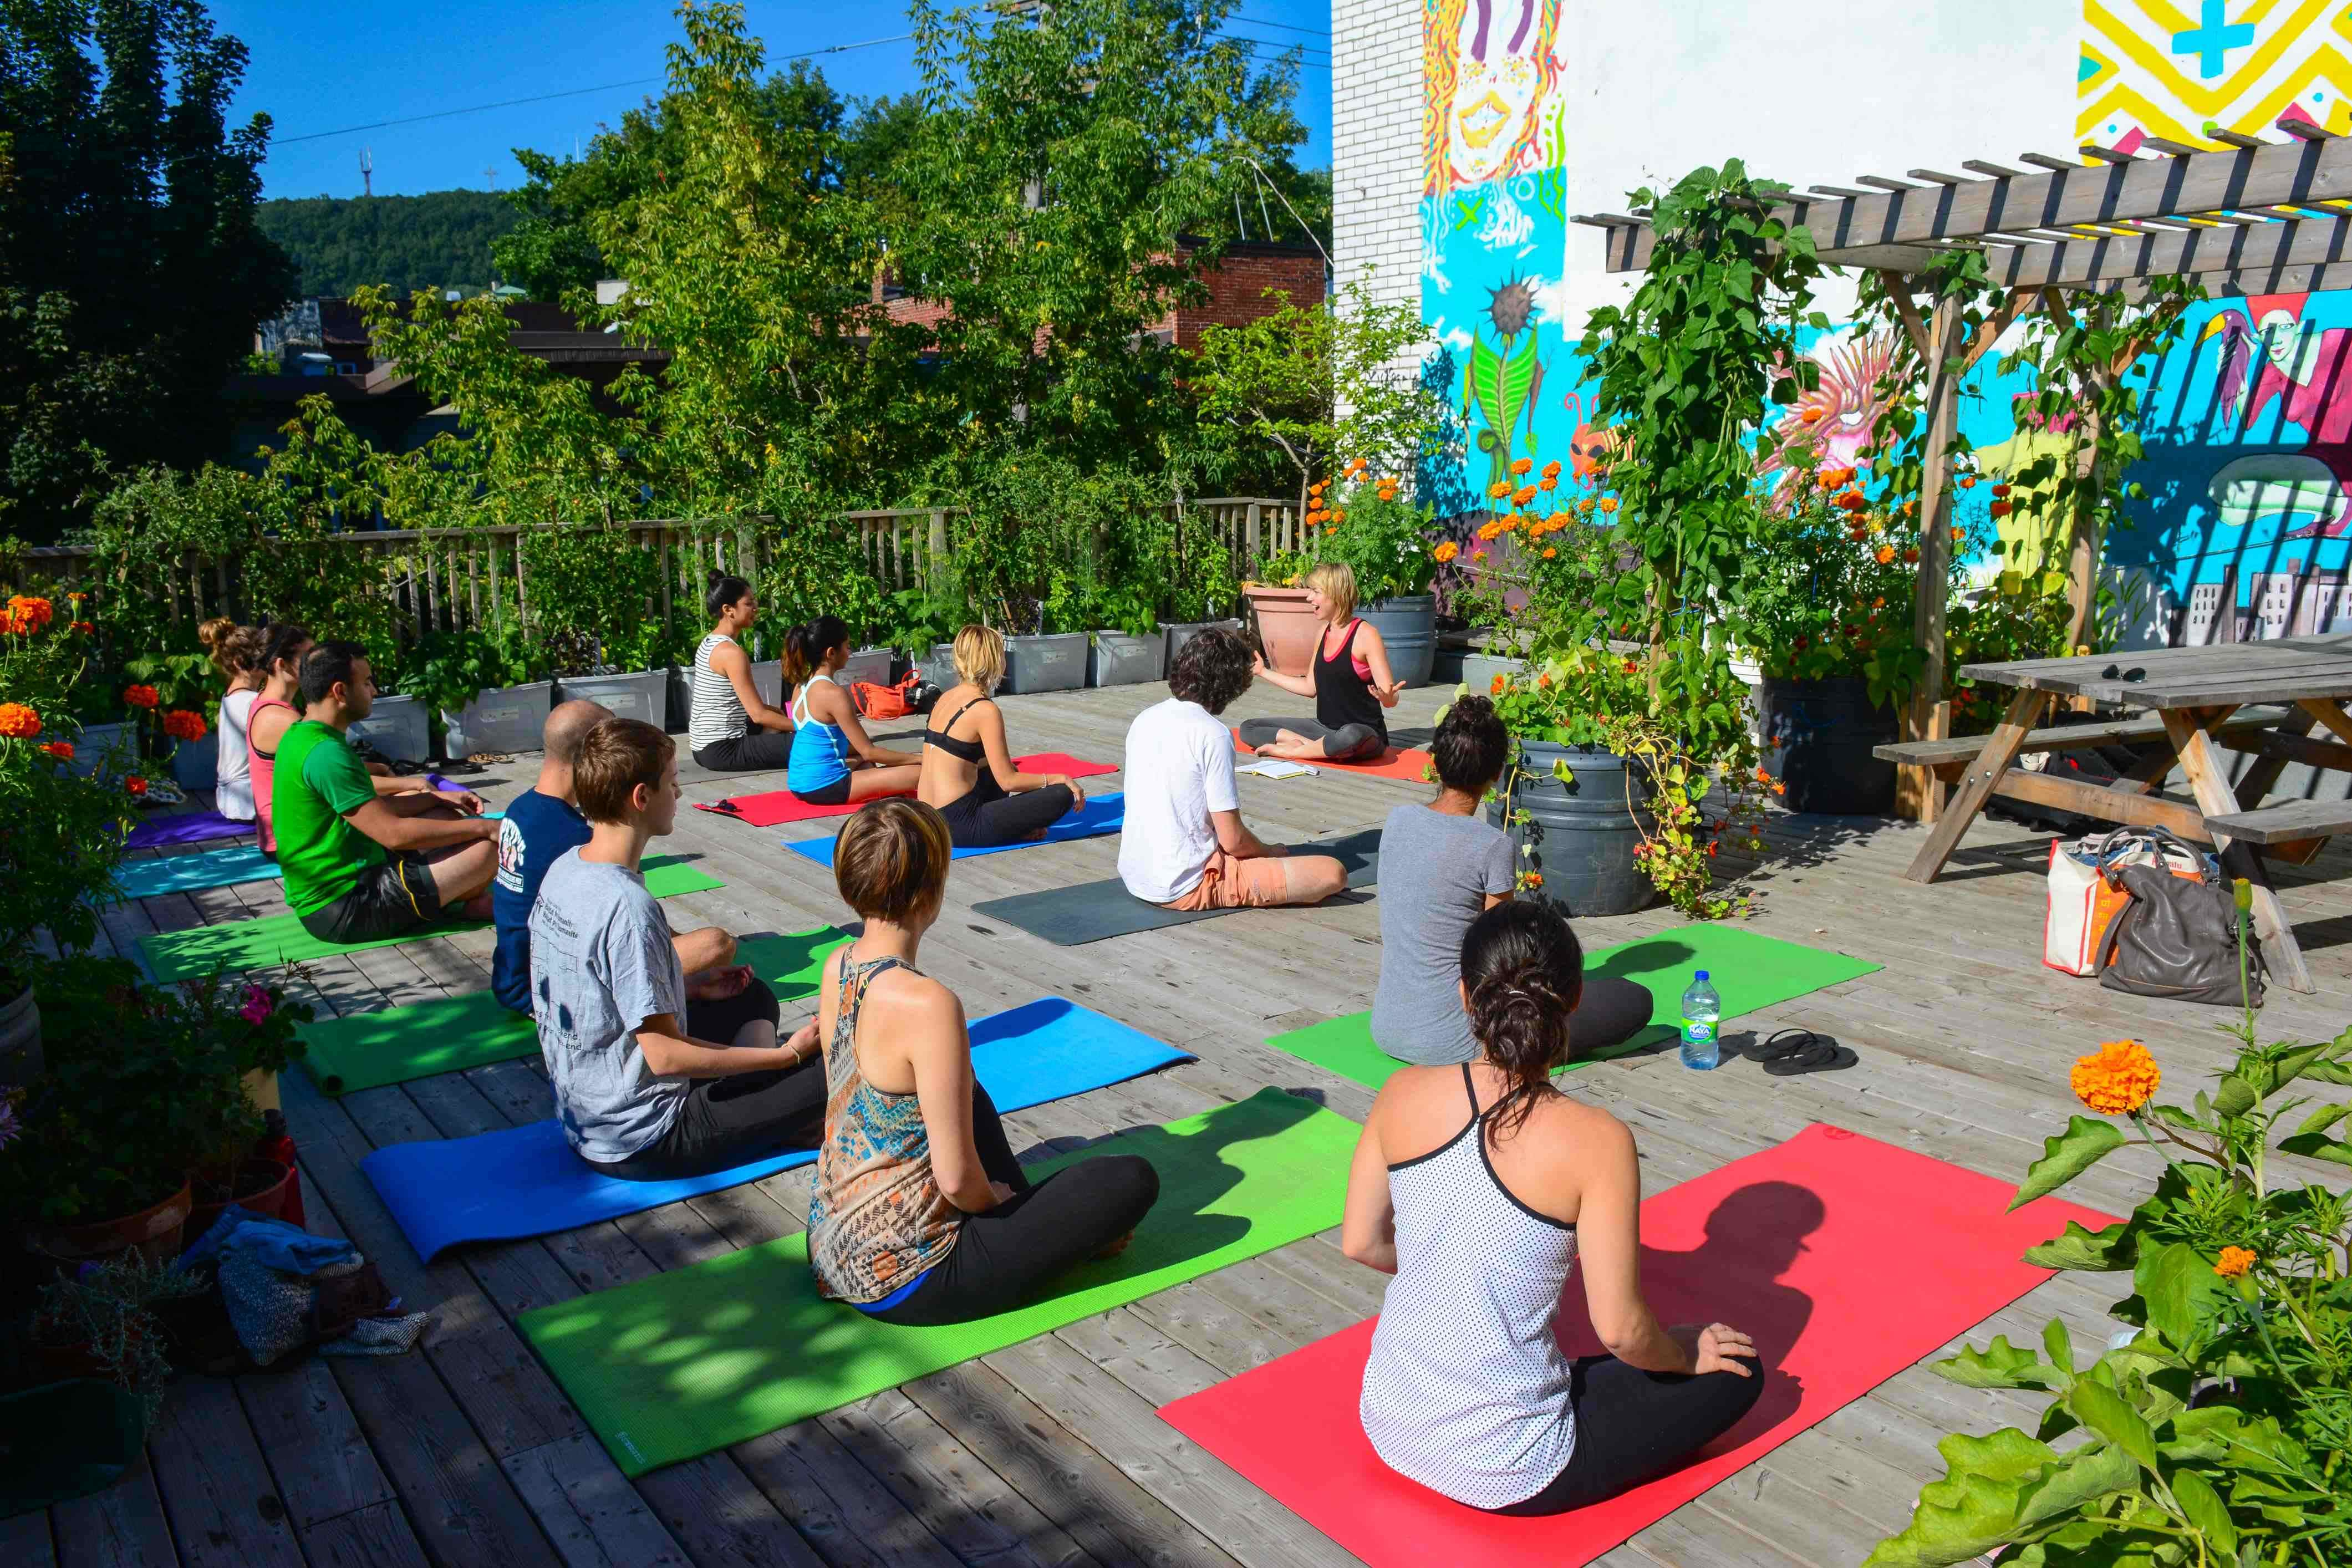 A group of yoga students step on to their yoga mats and stretch towards the sky atop the 1000-square foot urban vegetable garden which sits on rooftop of Santropol Roulant, a Montreal-based non-profit organization that builds connection between multi-generational communities through urban agriculture and meal delivery.